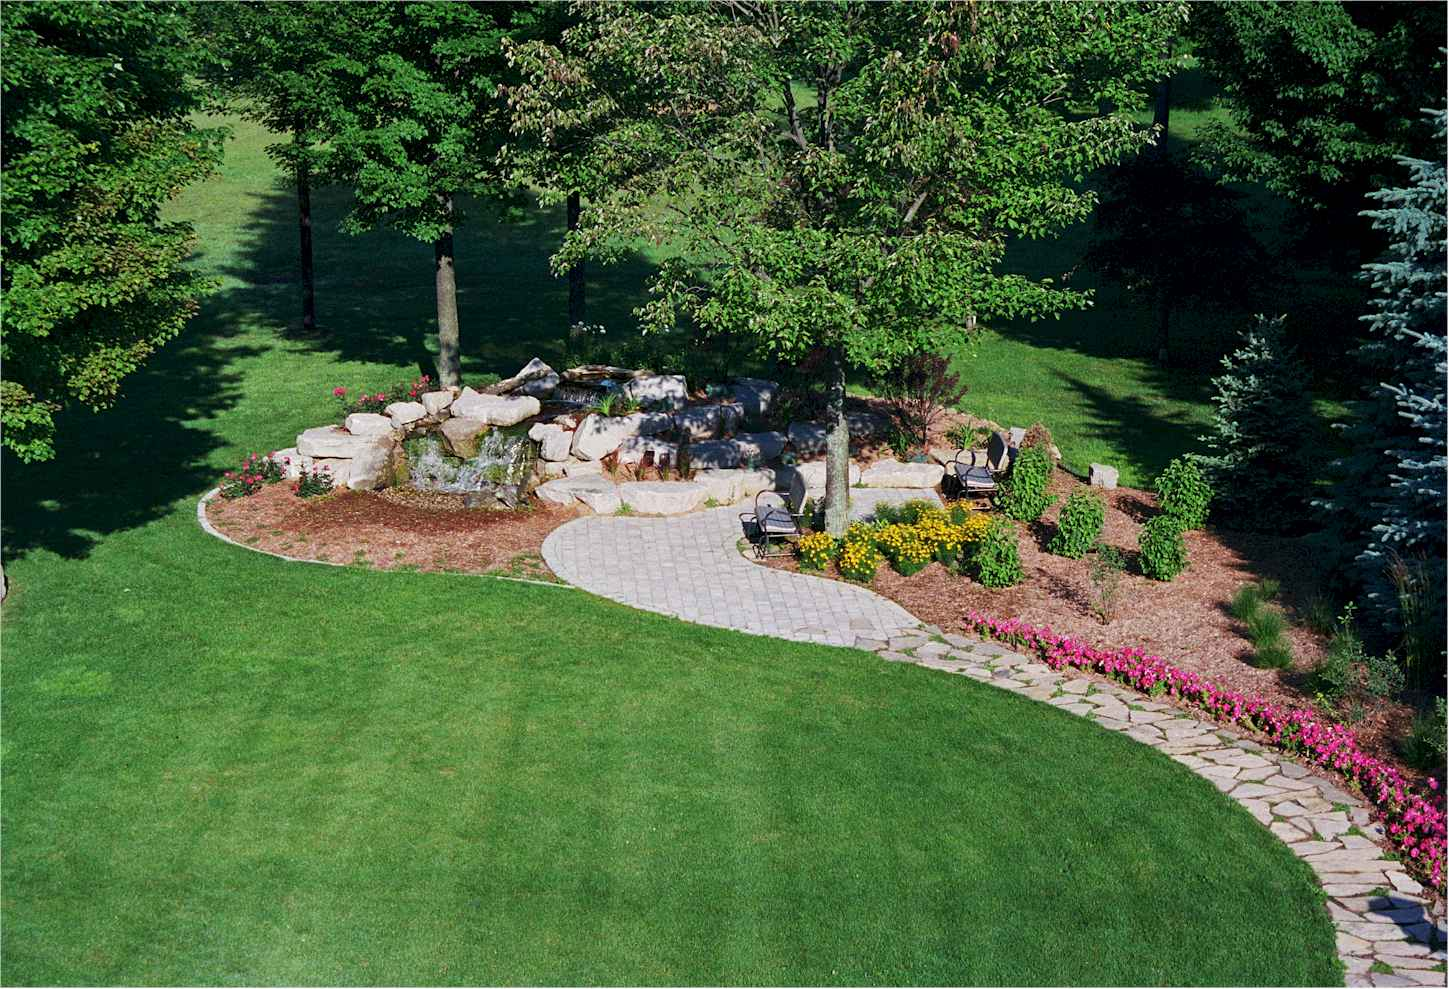 Landscaping Of Garden Pictures : Landscaping ideas to wow the neighbors